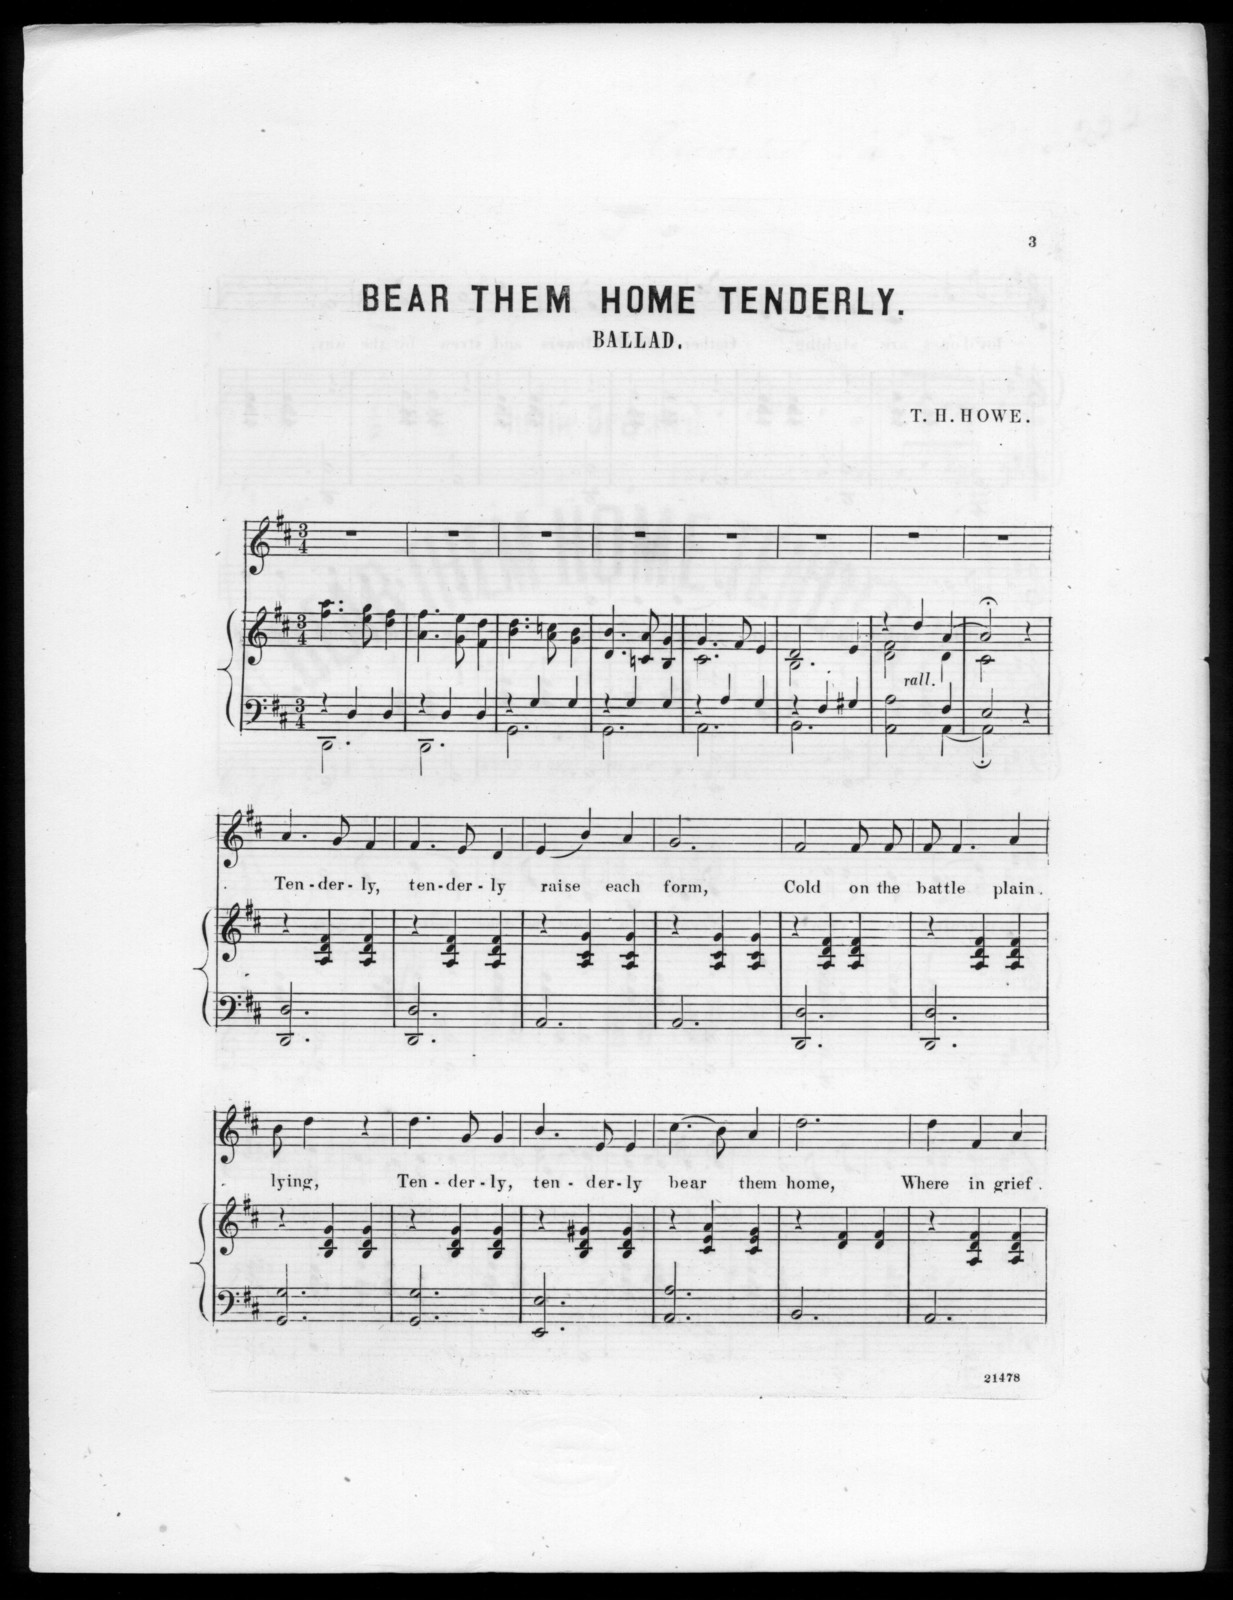 Bear them home tenderly